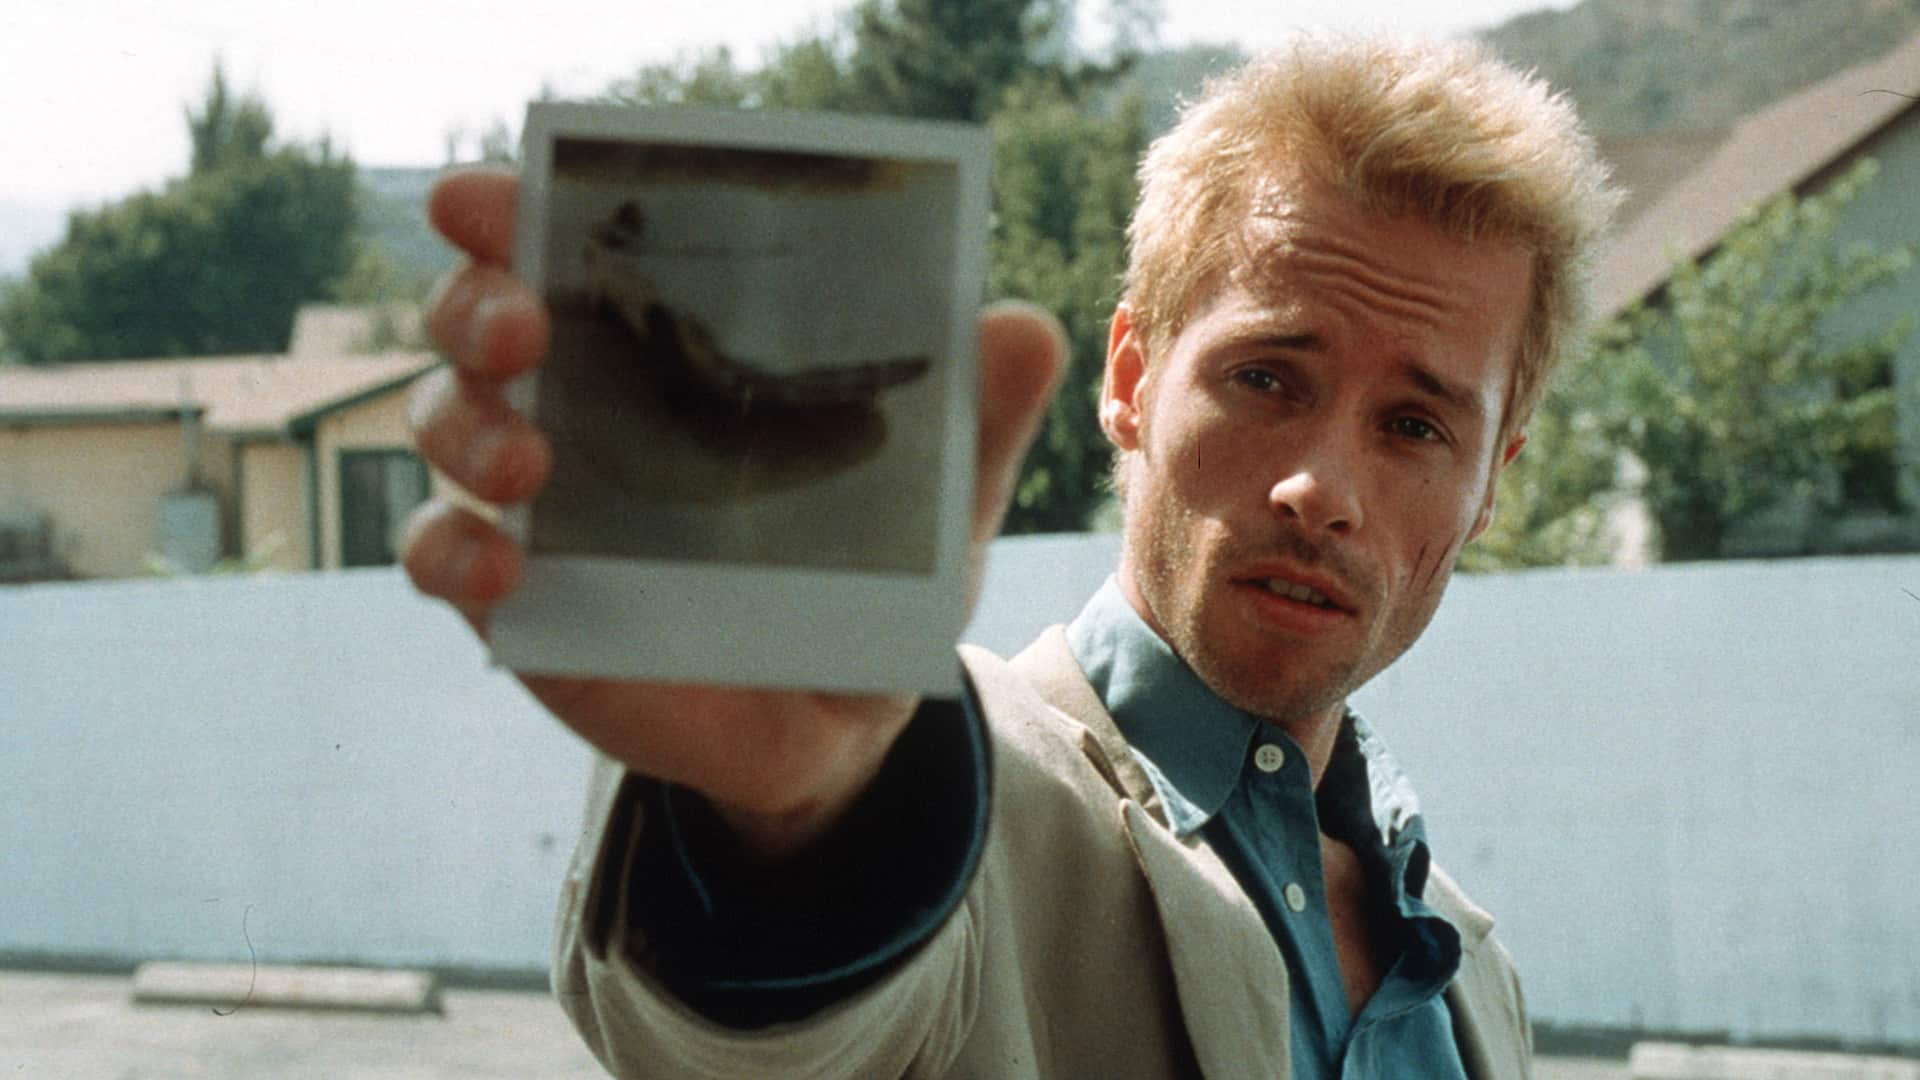 Memento – thriller movie